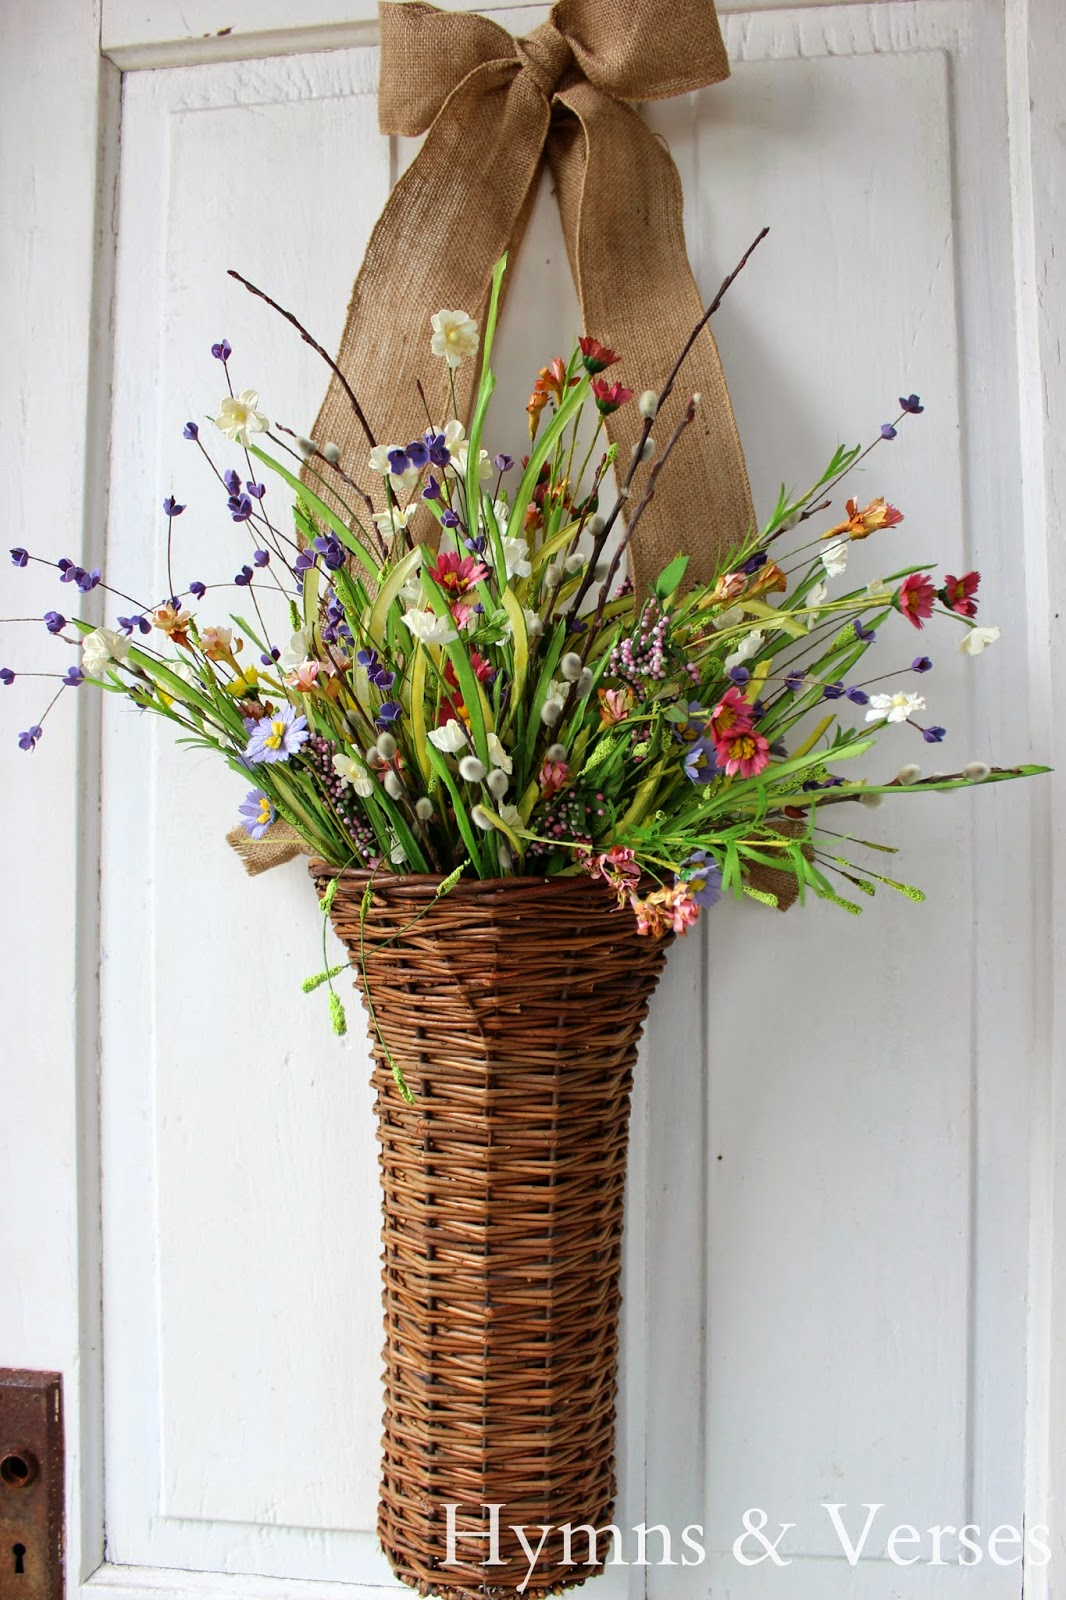 Hymns And Verses Front Door Spring Basket